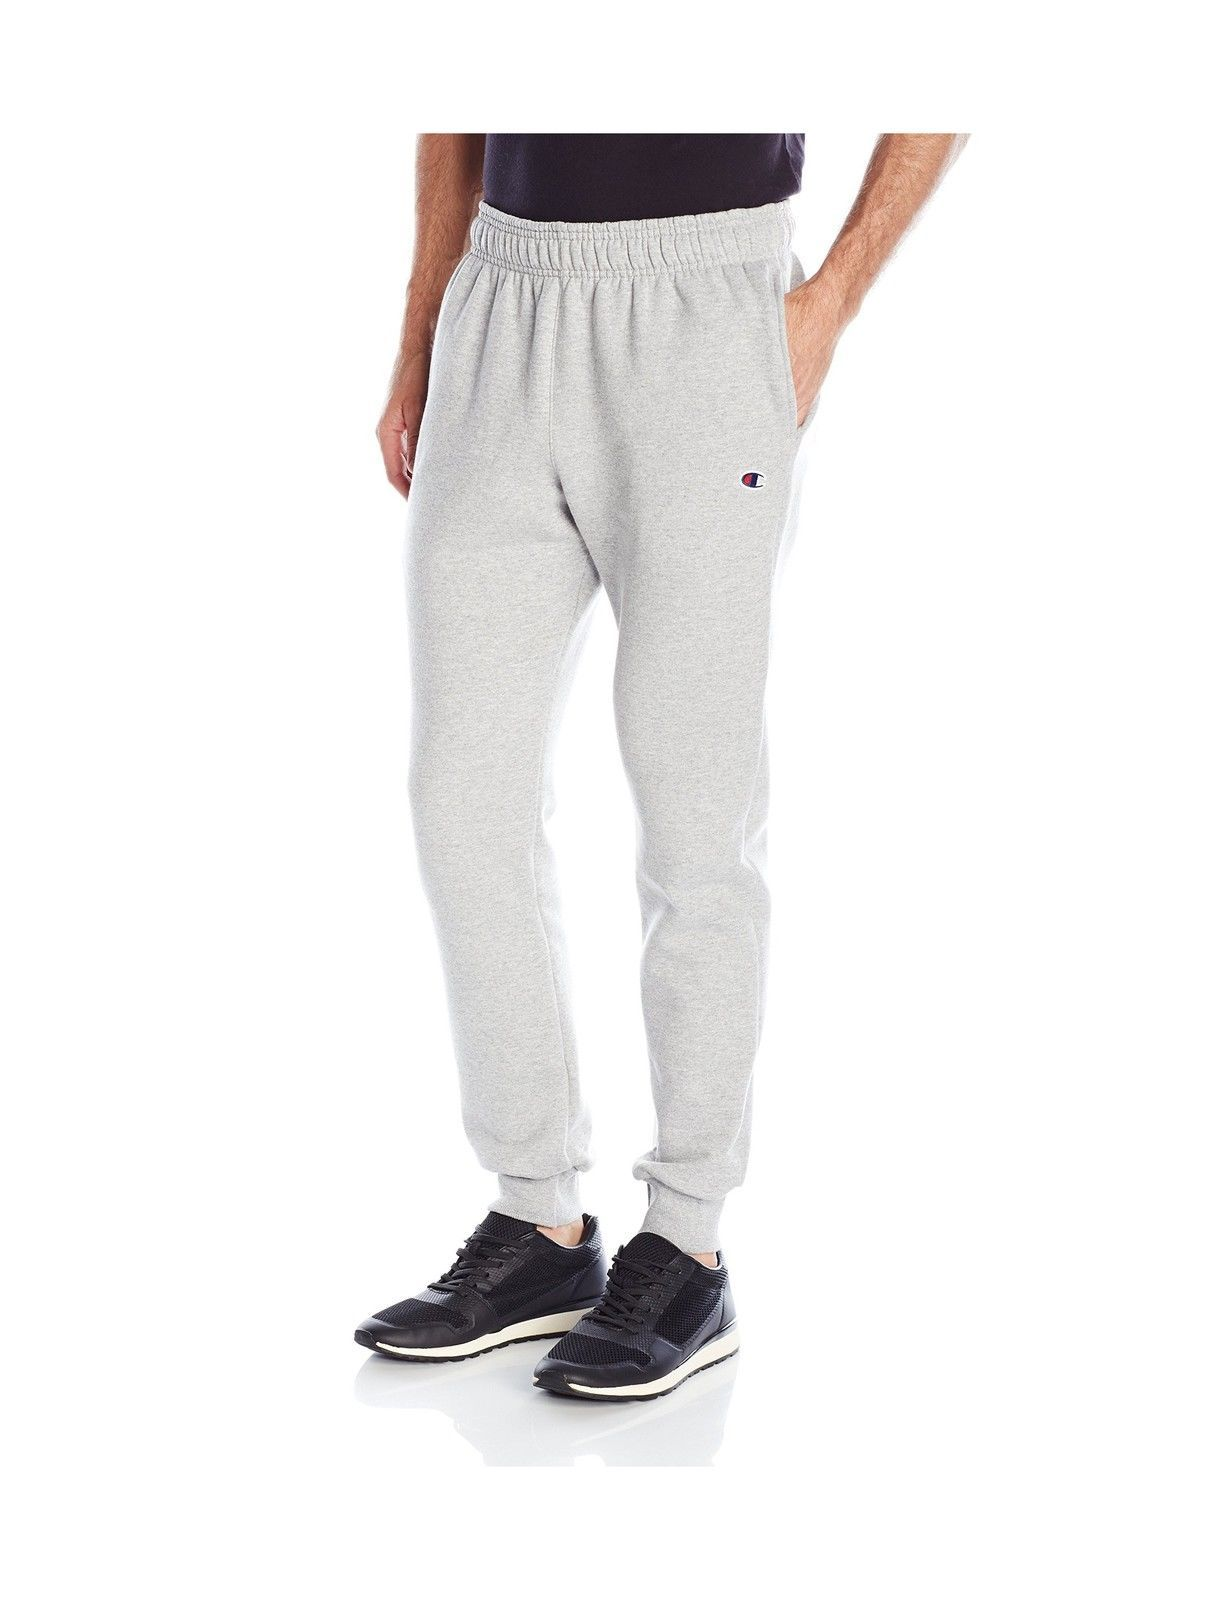 5d9628f961038 Champion Mens Powerblend Retro Fleece Jogger Pant Oxford Gray X-Large